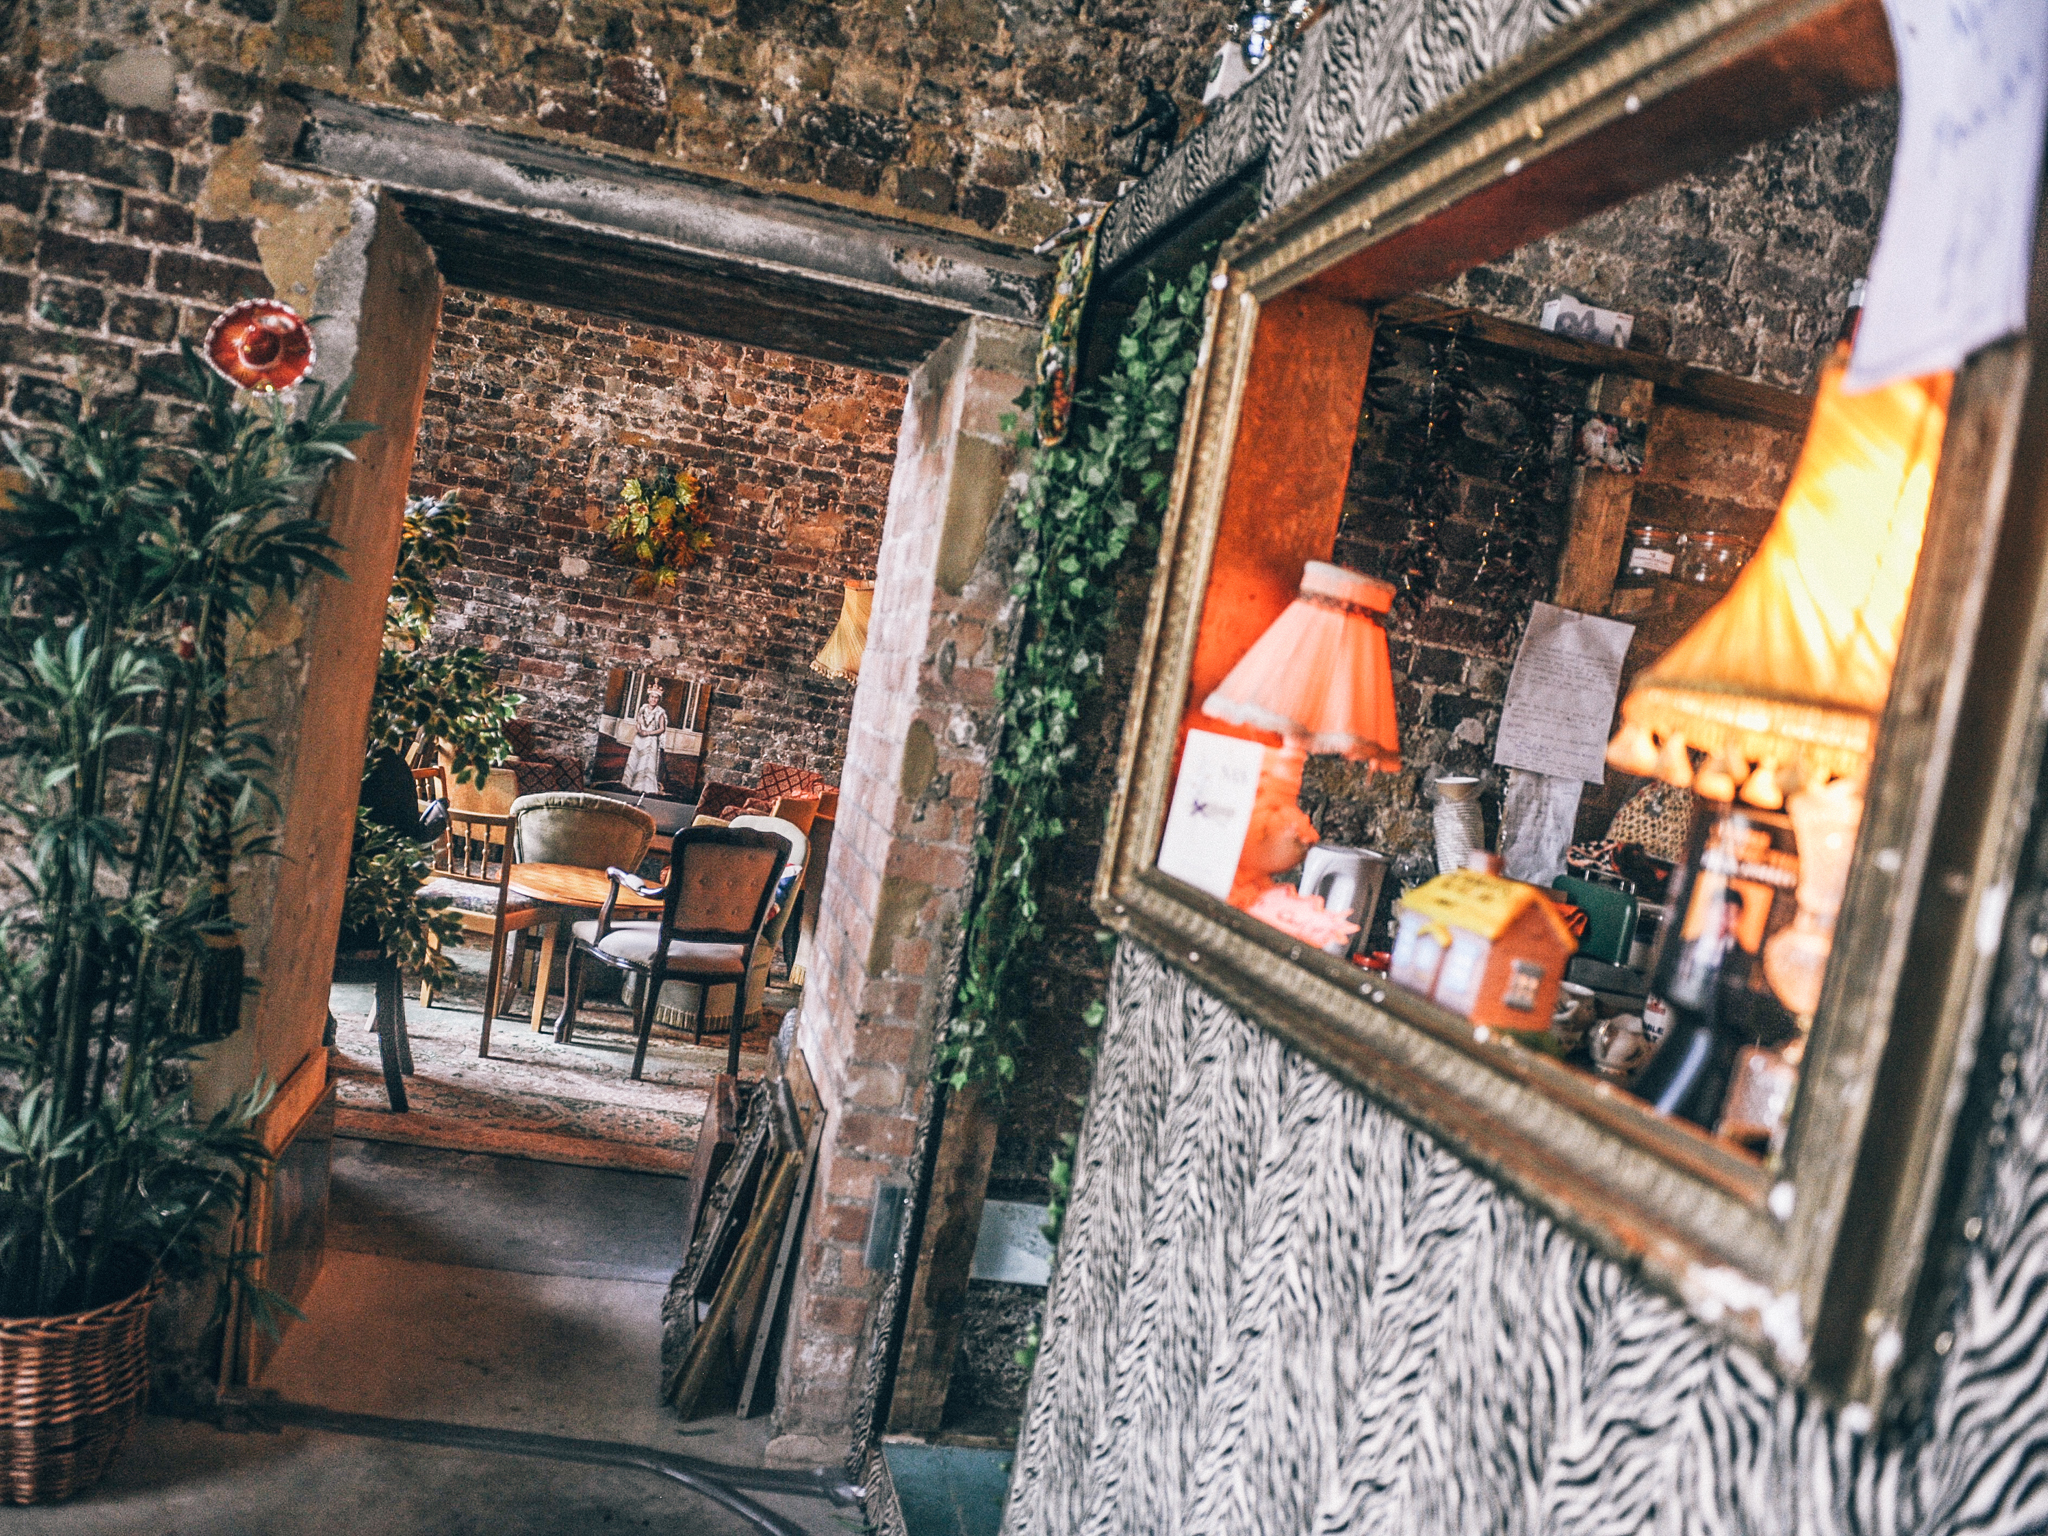 100 best bars and pubs in london, little nan's bar